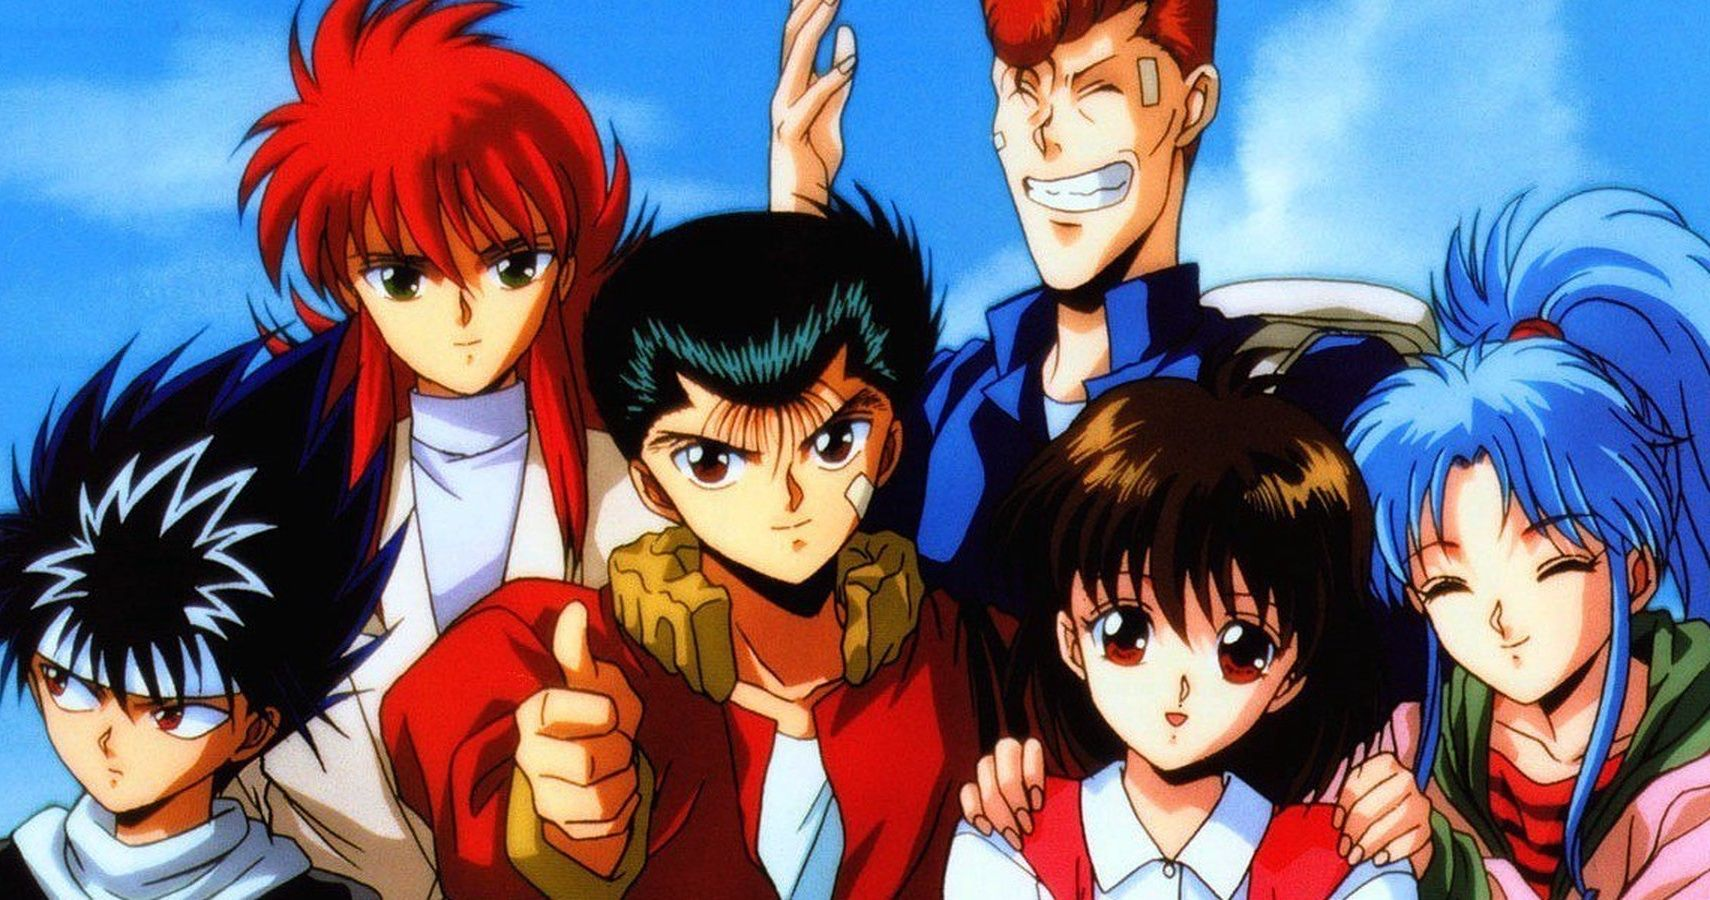 Yu Yu Hakusho: 5 Mysteries Surrounding The Series It Took Years To Uncover (& 5 We Never Did)